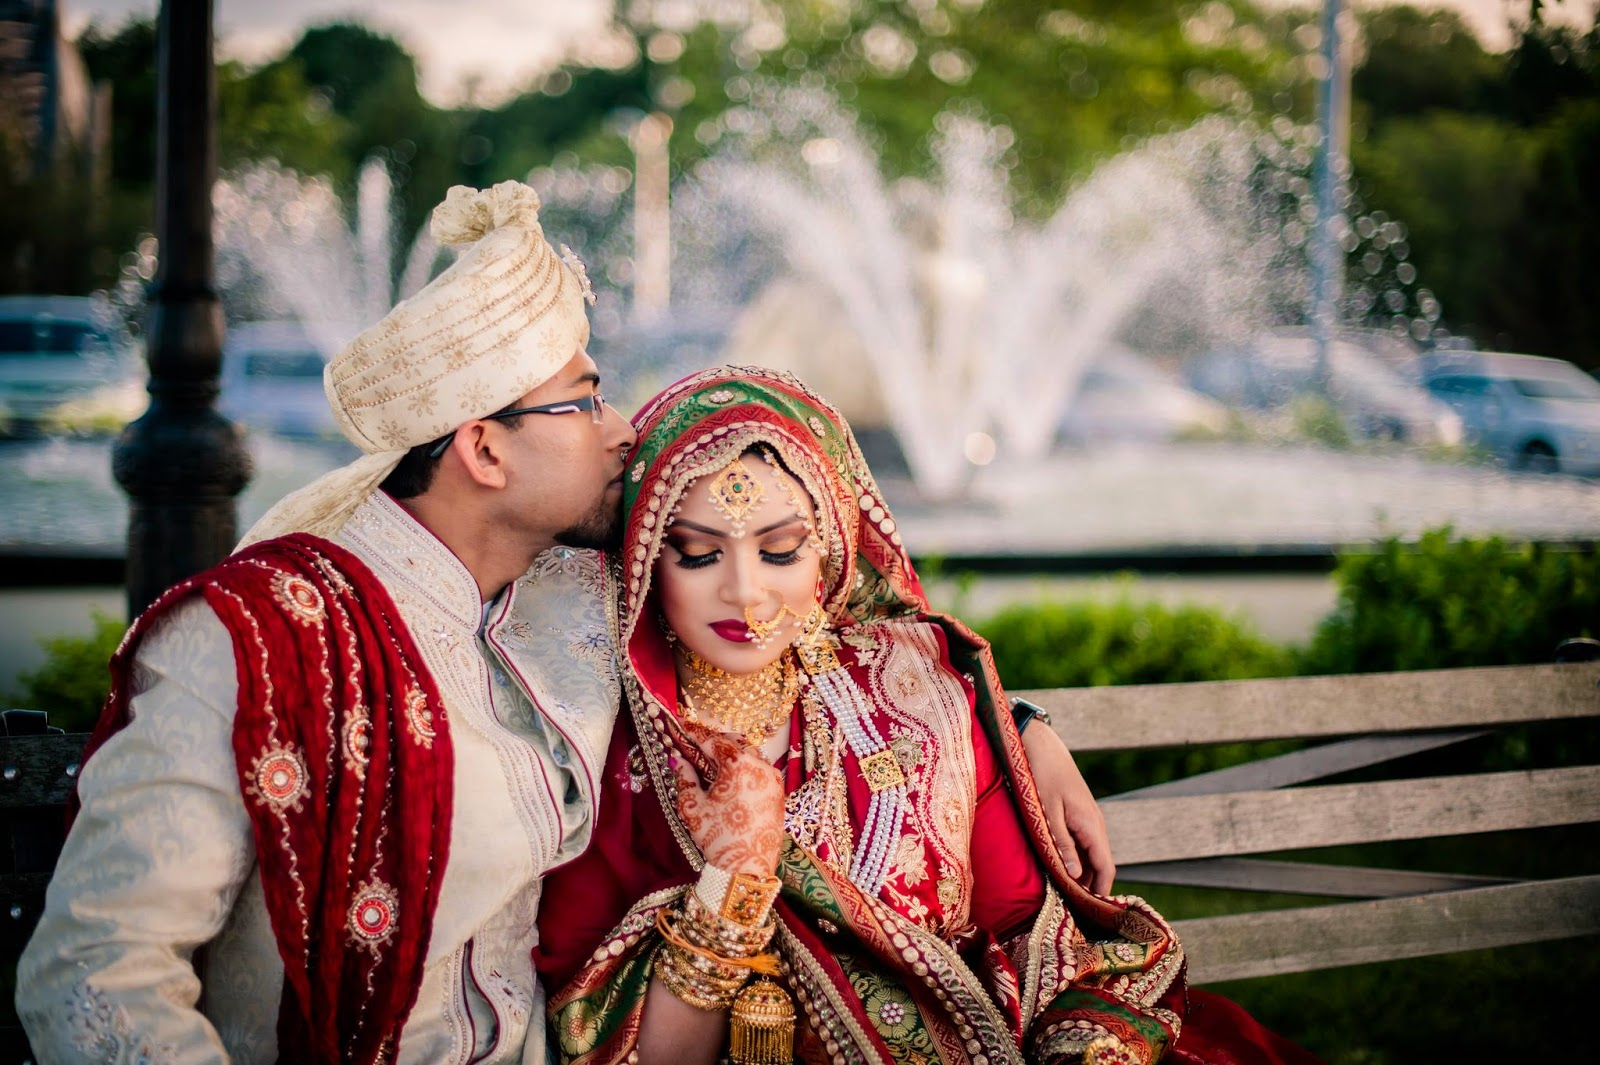 Indian Couples are always beautiful!